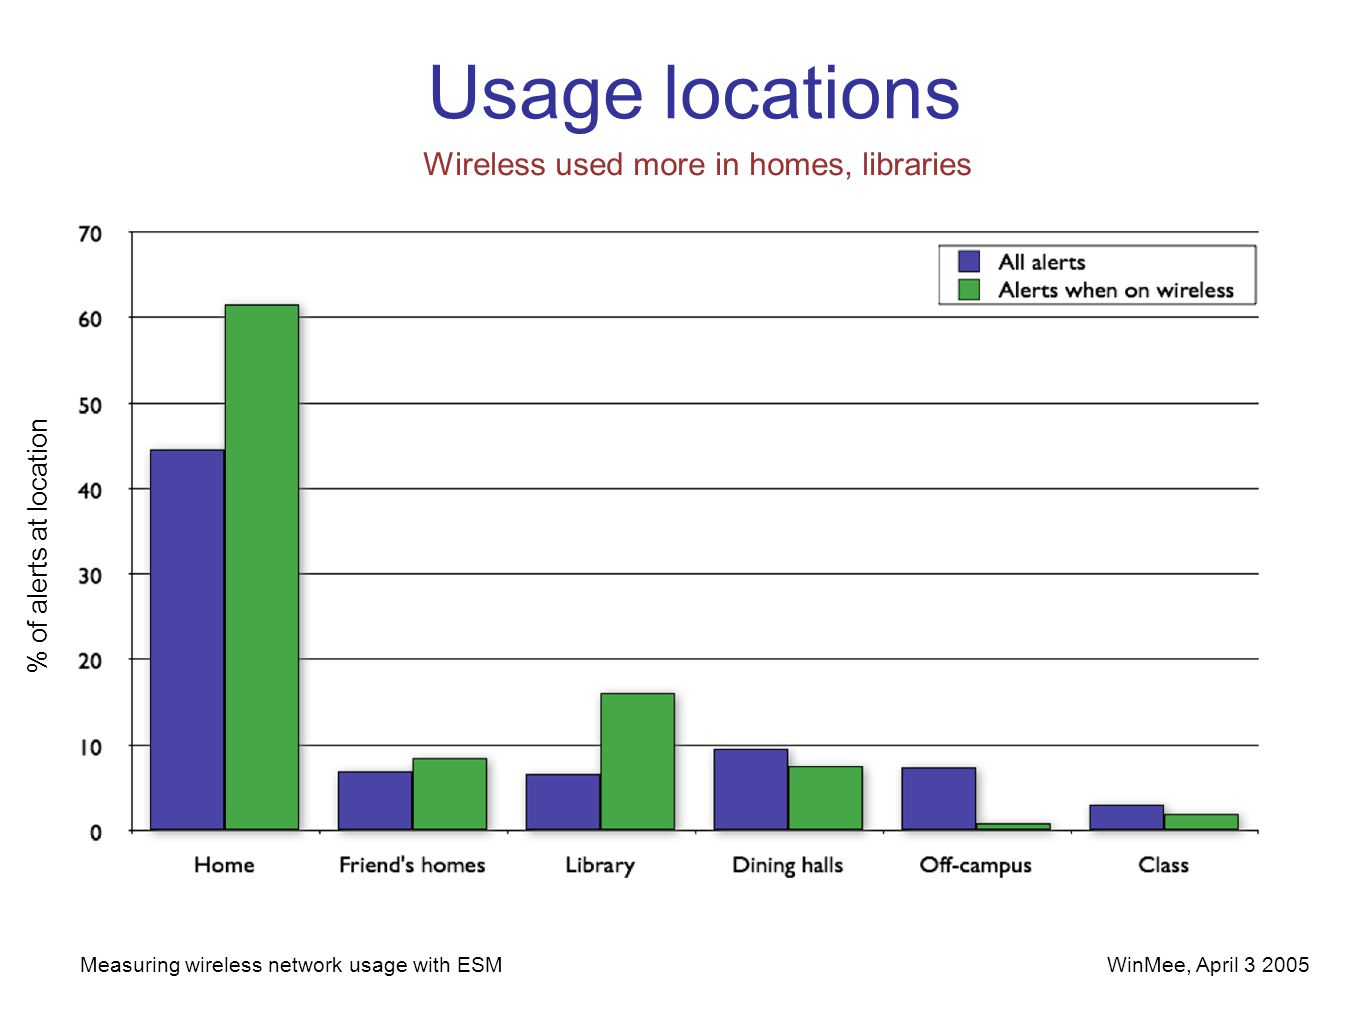 WinMee, April 3 2005Measuring wireless network usage with ESM Usage locations Wireless used more in homes, libraries % of alerts at location